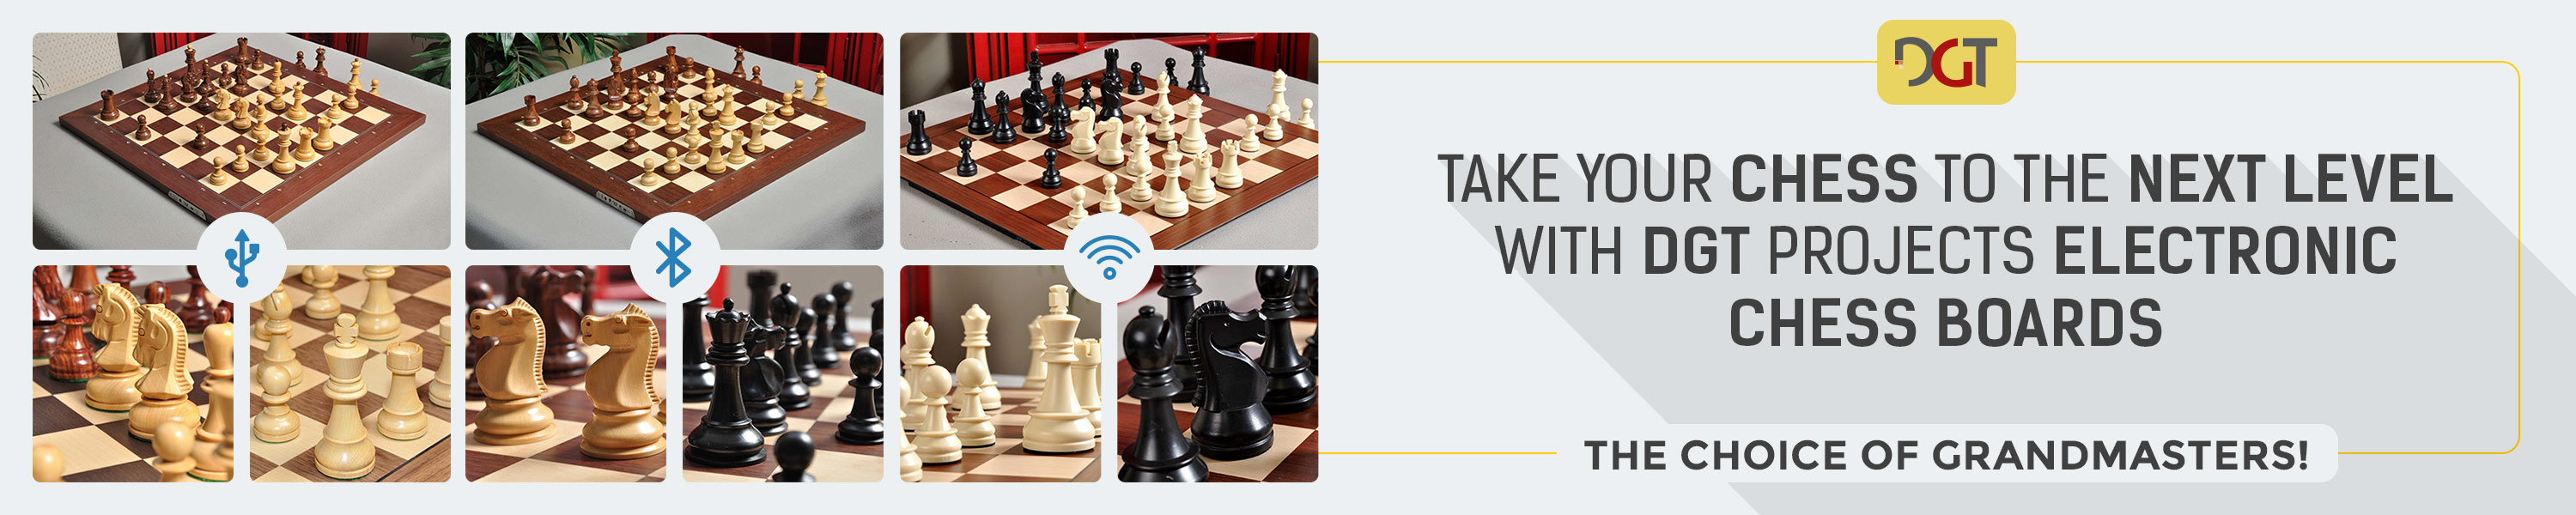 DGT Projects Electronic Chess Boards